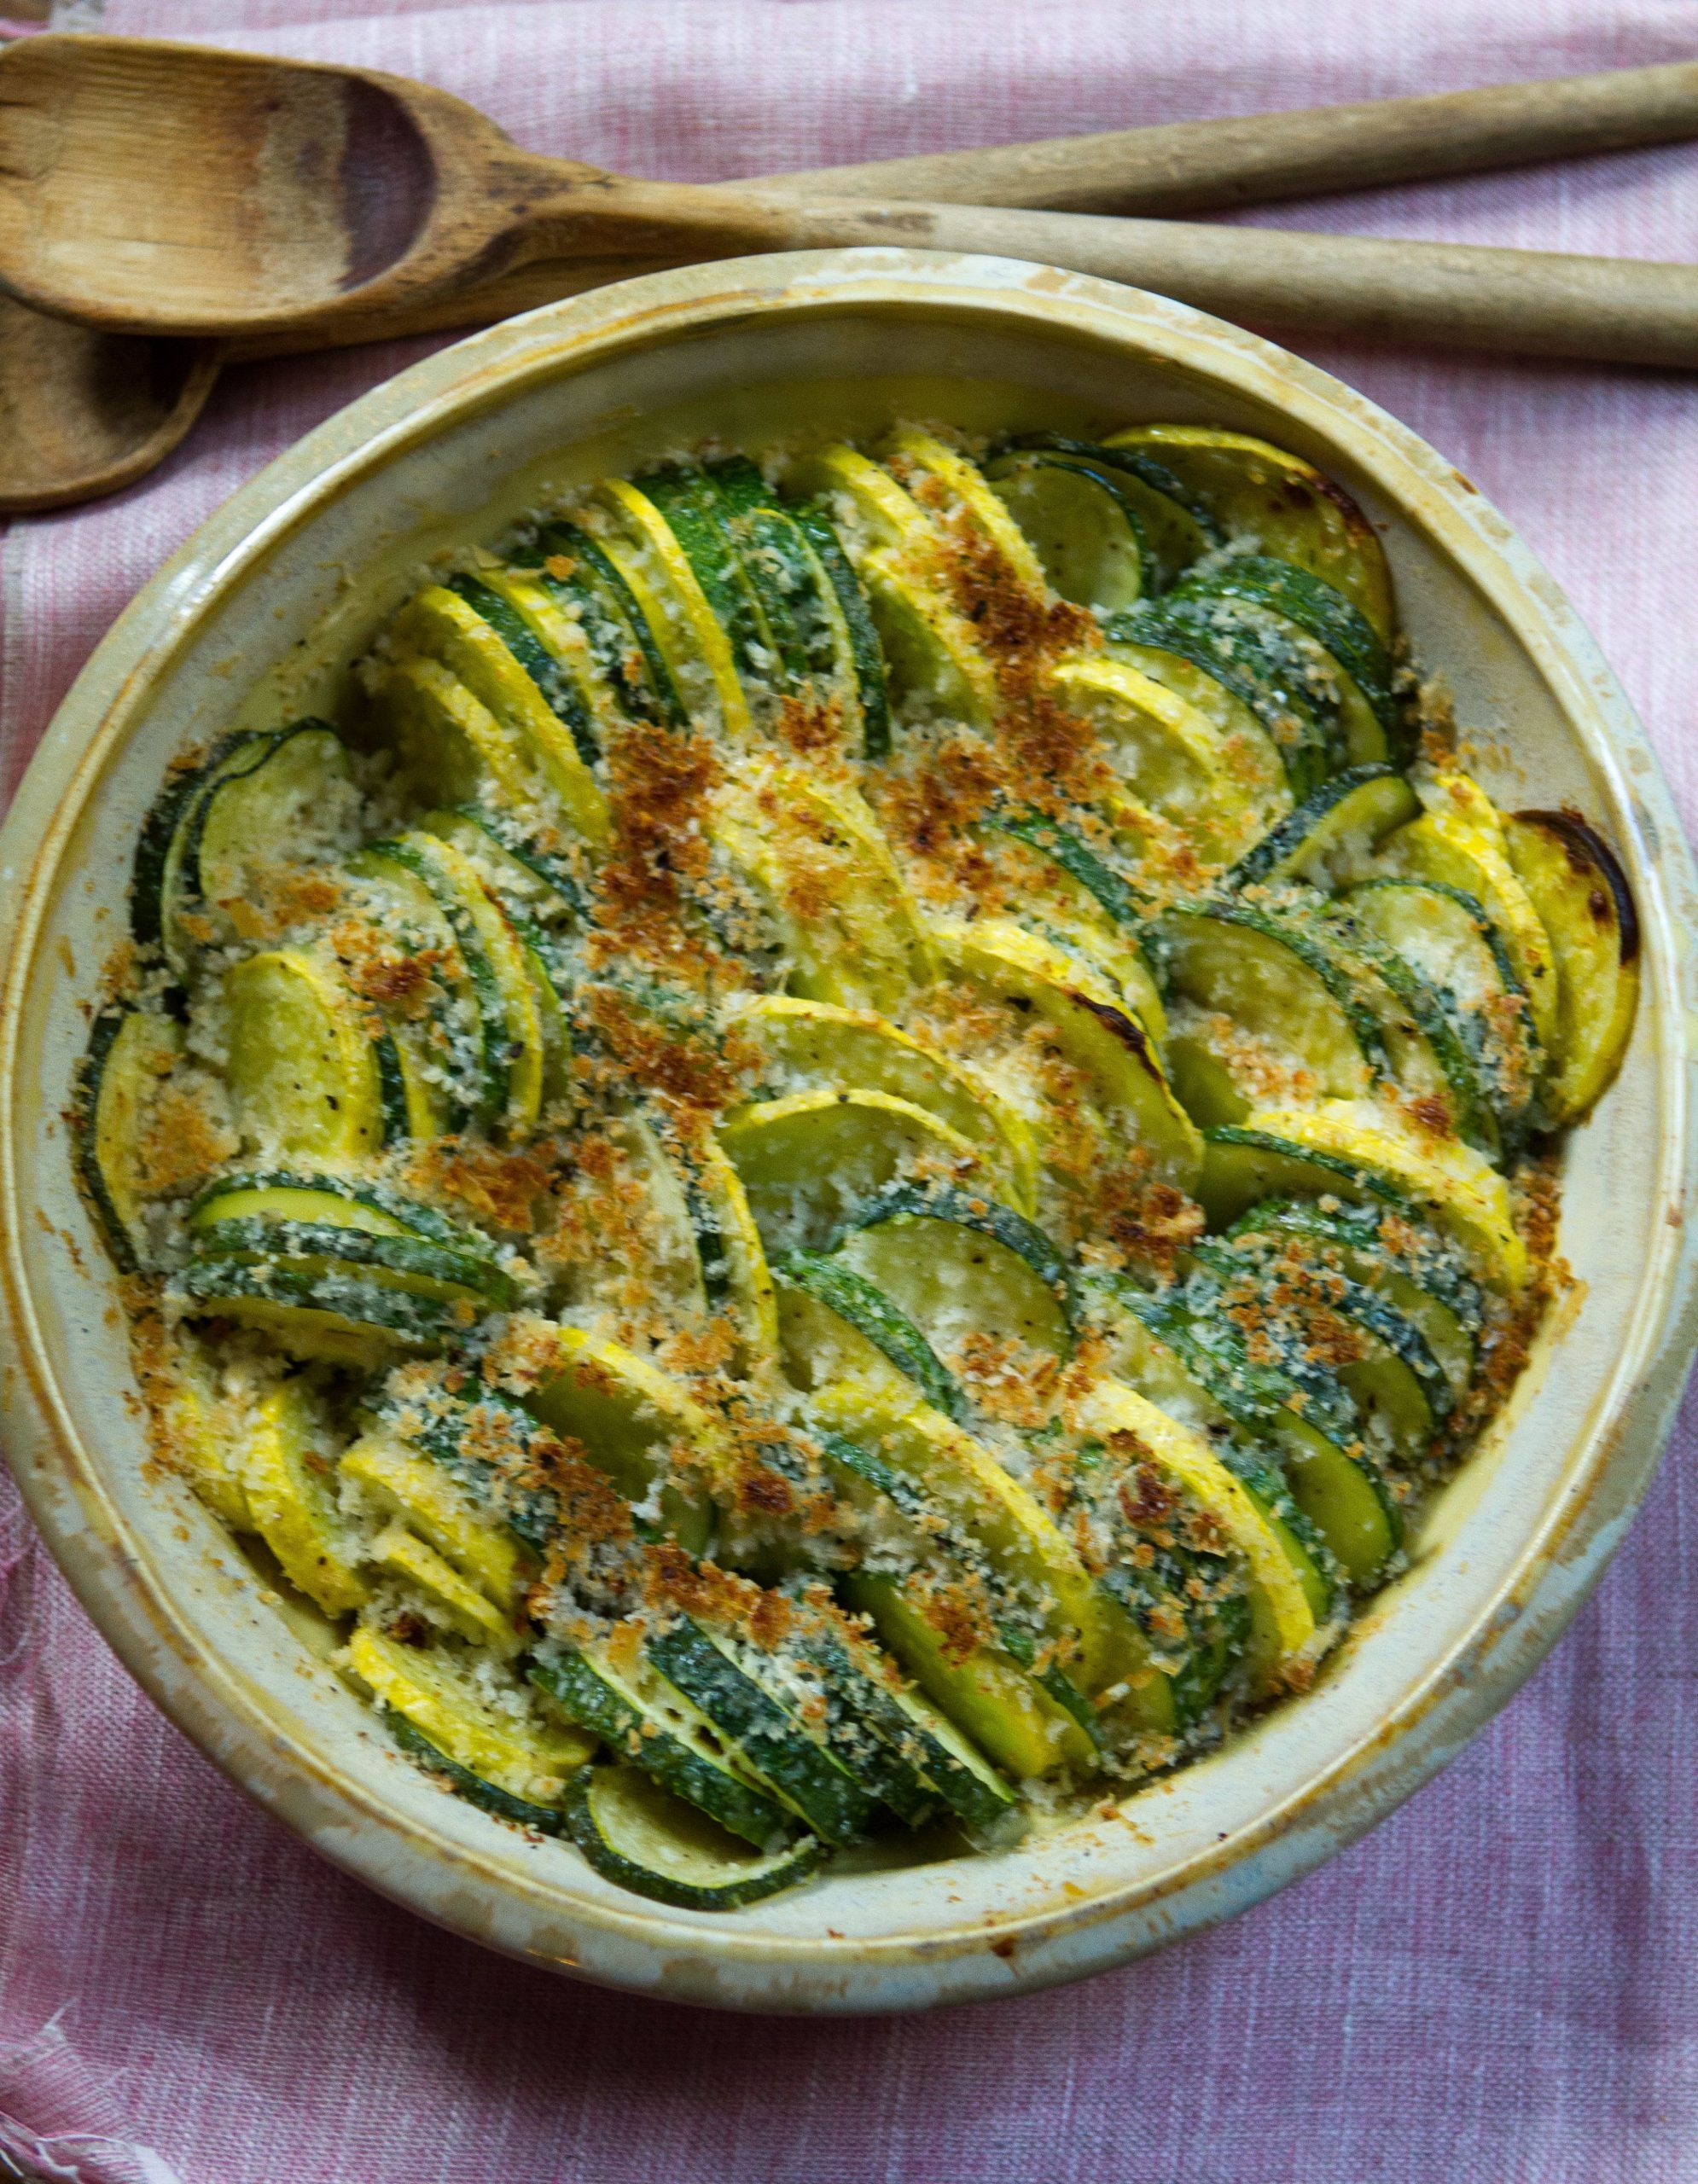 Baked Summer Squash - Recipes For Summer Zucchini